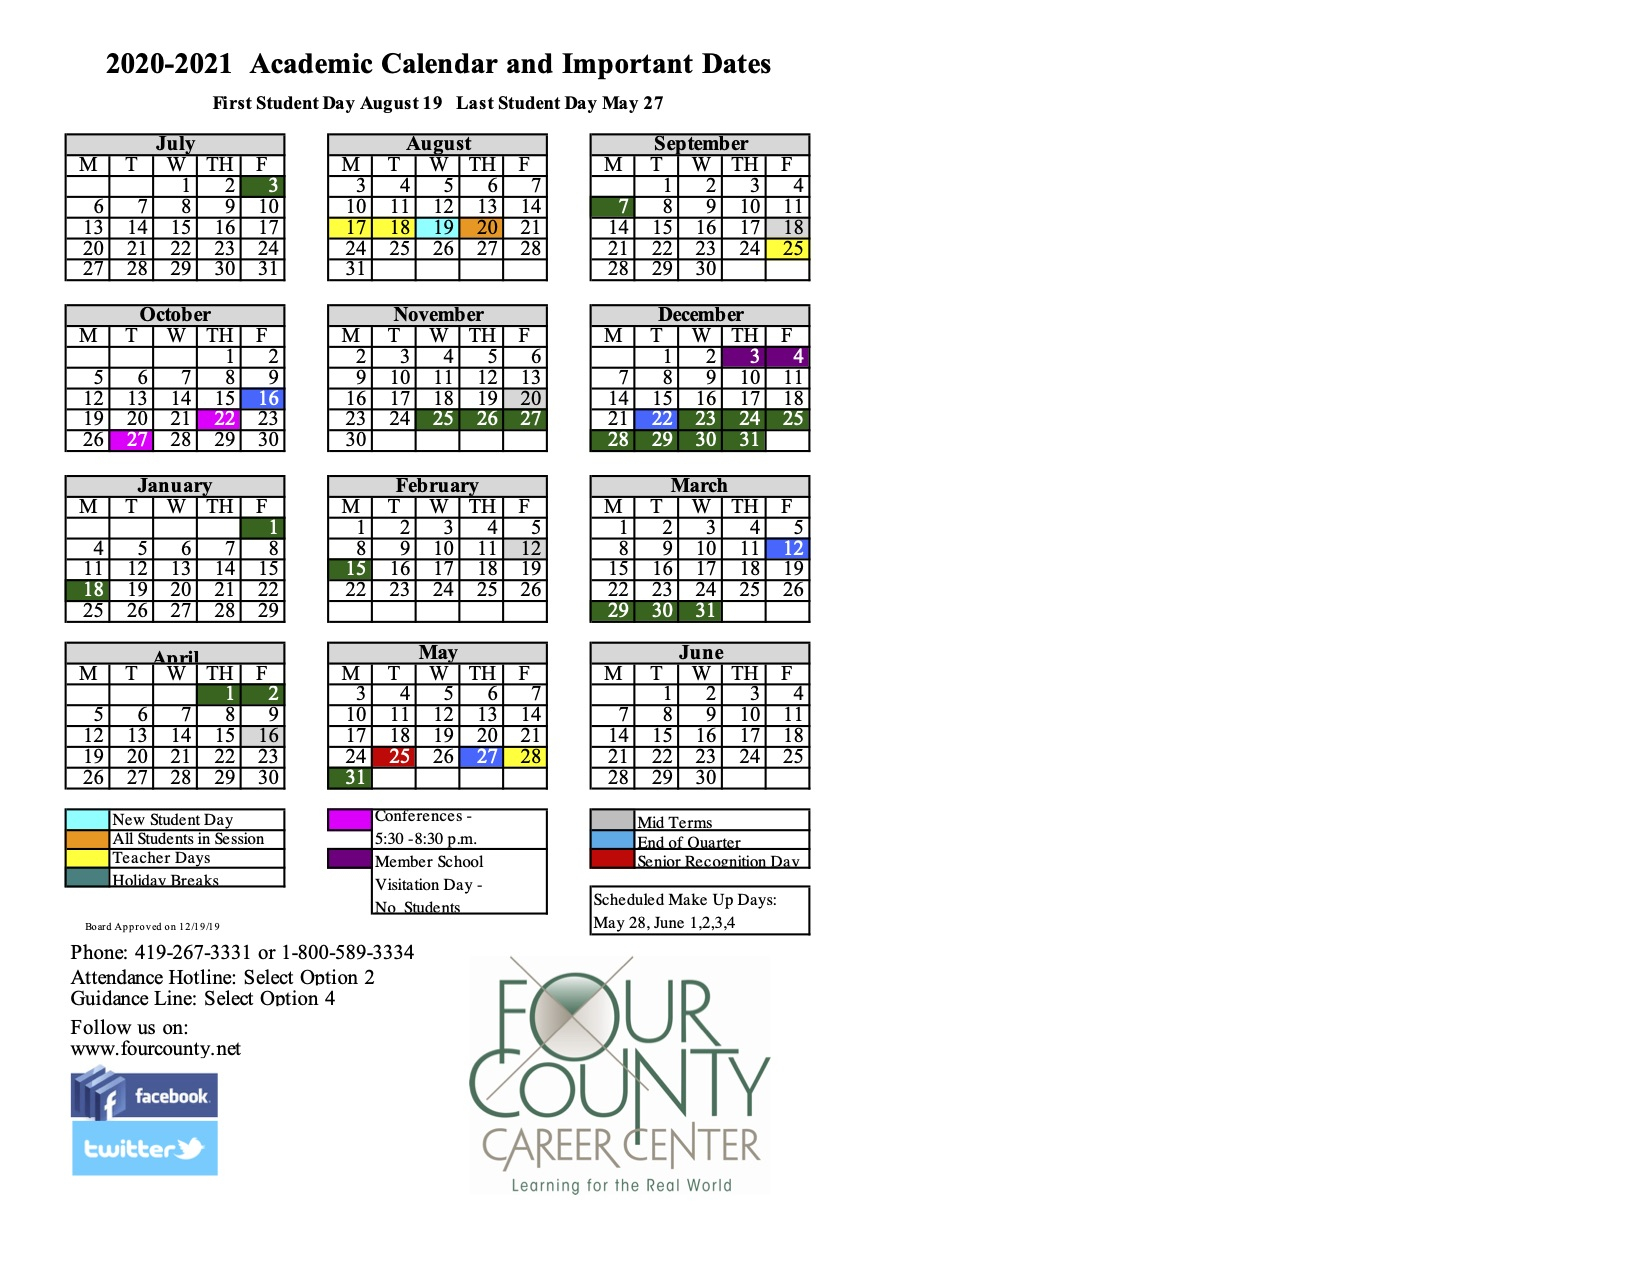 School Calendar for University Of Findlay Academic Calendar 2021